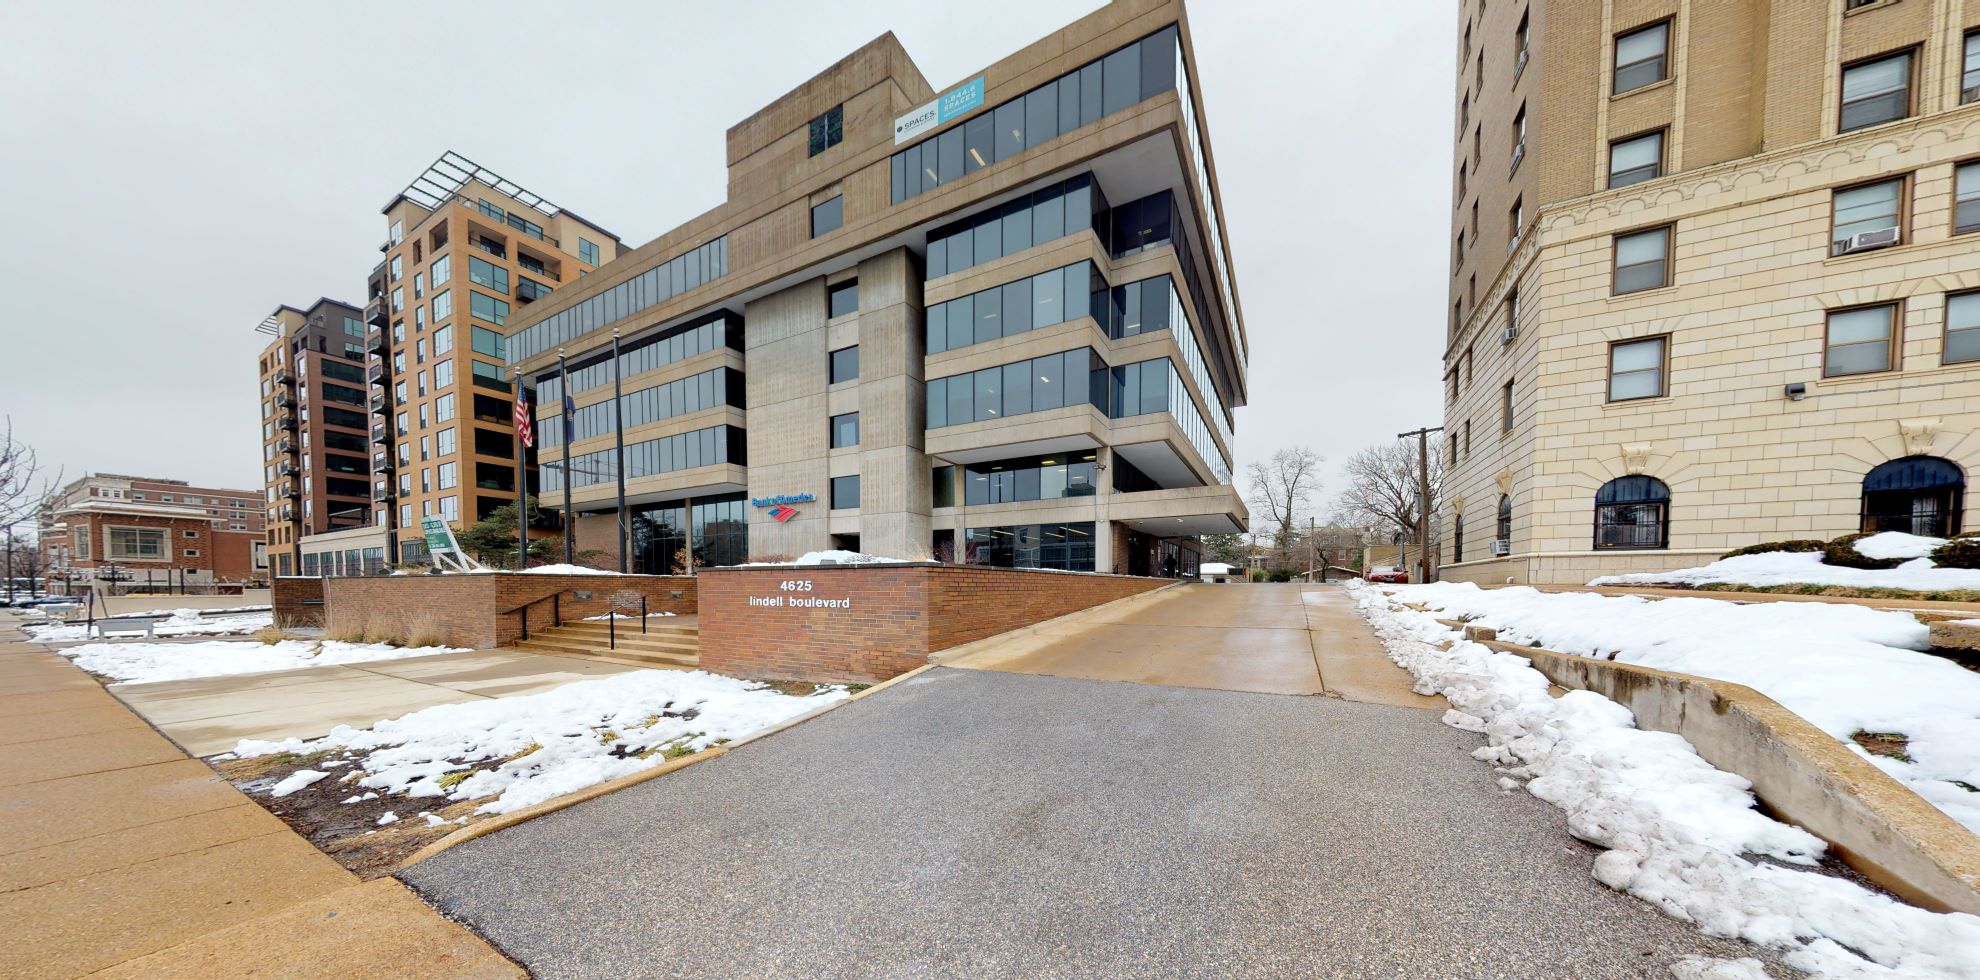 Bank of America financial center with drive-thru ATM | 4625 Lindell Blvd, Saint Louis, MO 63108